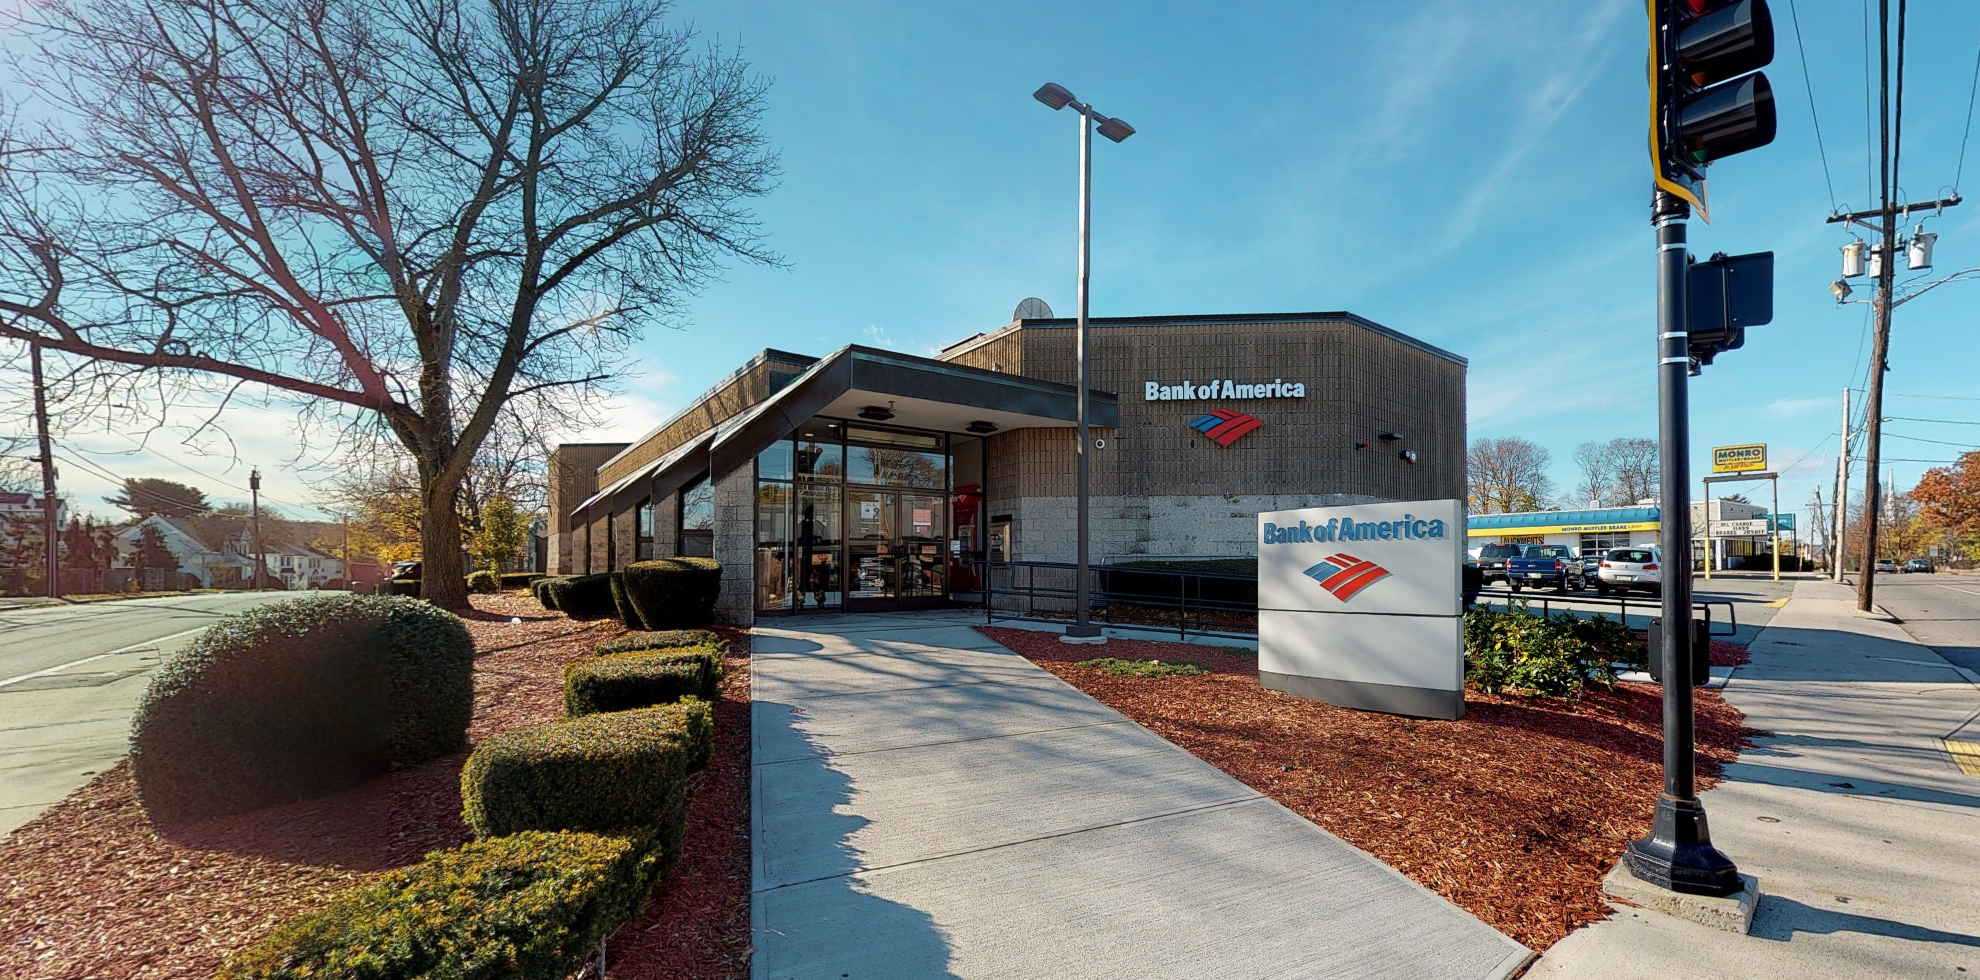 Bank of America financial center with drive-thru ATM and teller   690 Adams St, Quincy, MA 02169